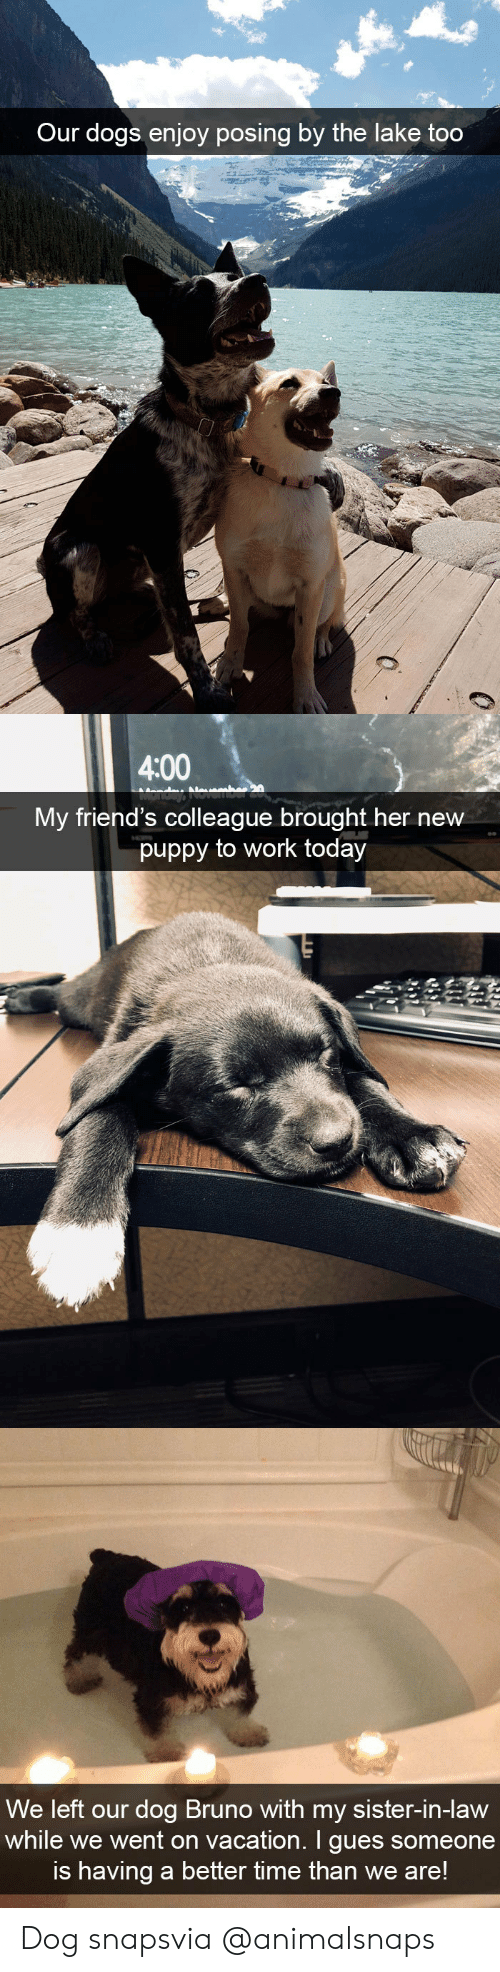 Dogs, Friends, and Target: Our dogs enjoy posing by the lake too   4:00  My friend's colleague brought her new  puppy to work today   We left our dog Bruno with my sister-in-Haw  while we went on vacation. I gues someone  is having a better time than we are! Dog snapsvia @animalsnaps